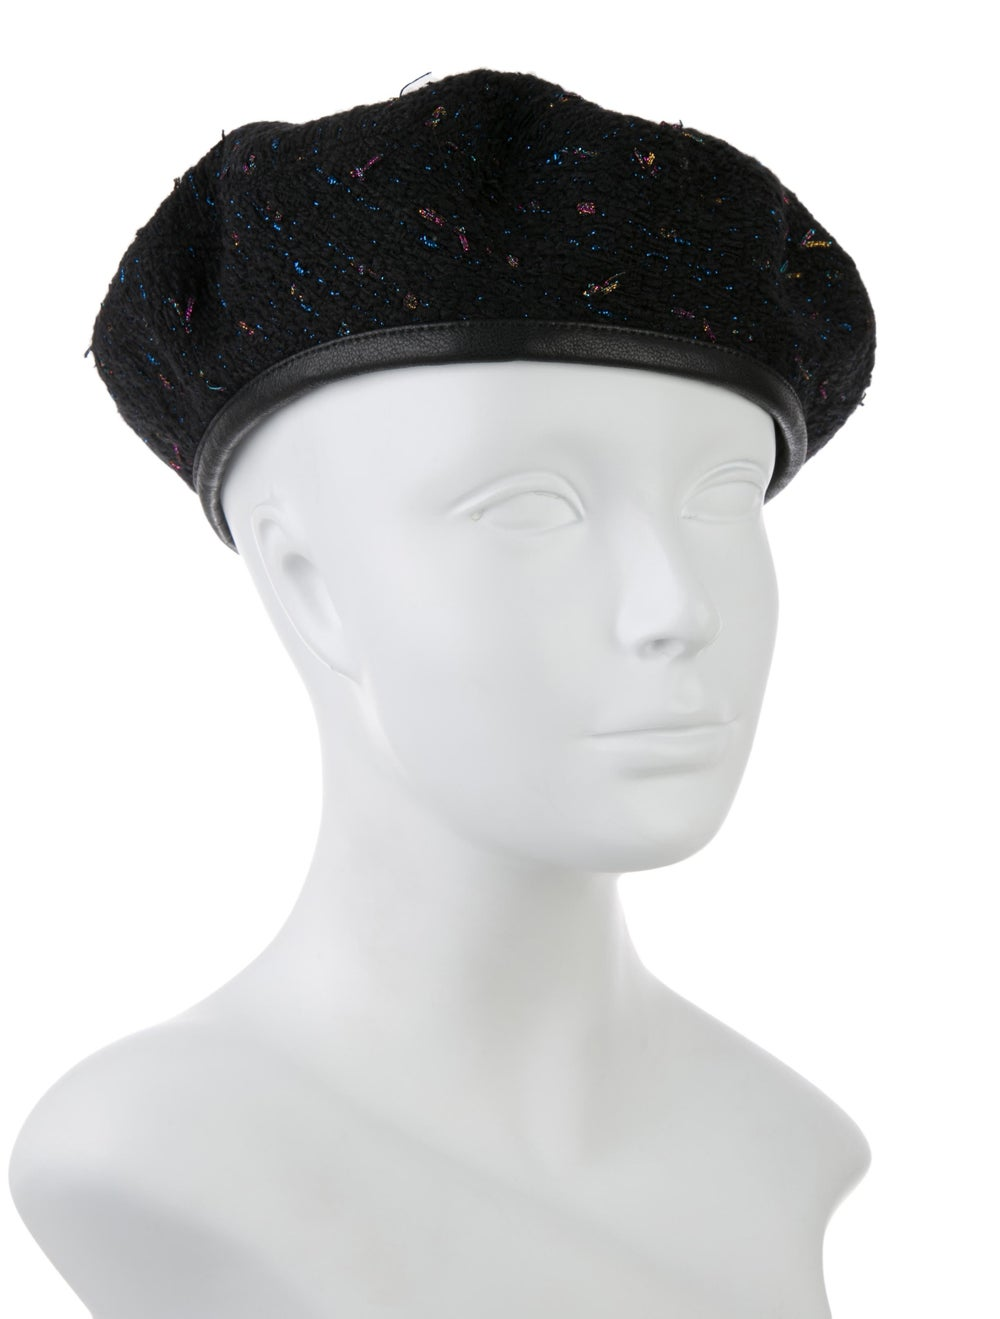 Eugenia Kim Cher Boucle Beret Hat w/ Tags Black - image 3